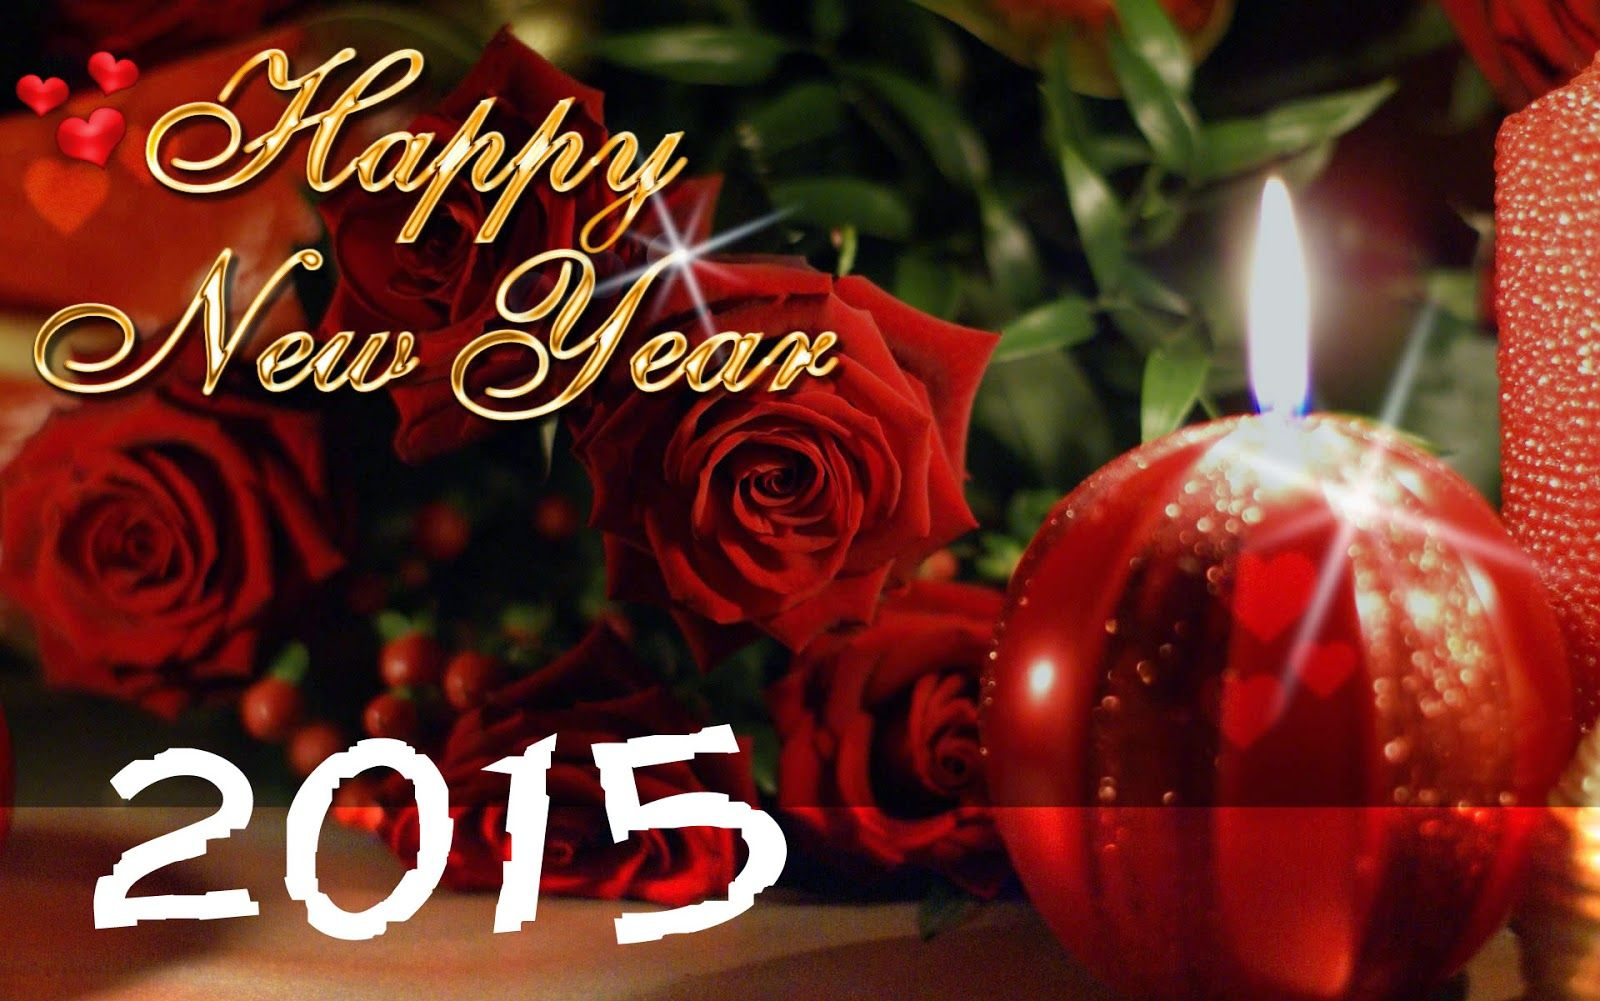 Sweet and sweetest sunday arvellous monday asty tuesday happy new year 2015 red rose happy new year 2015 happy new year quote happy new year greeting kristyandbryce Choice Image